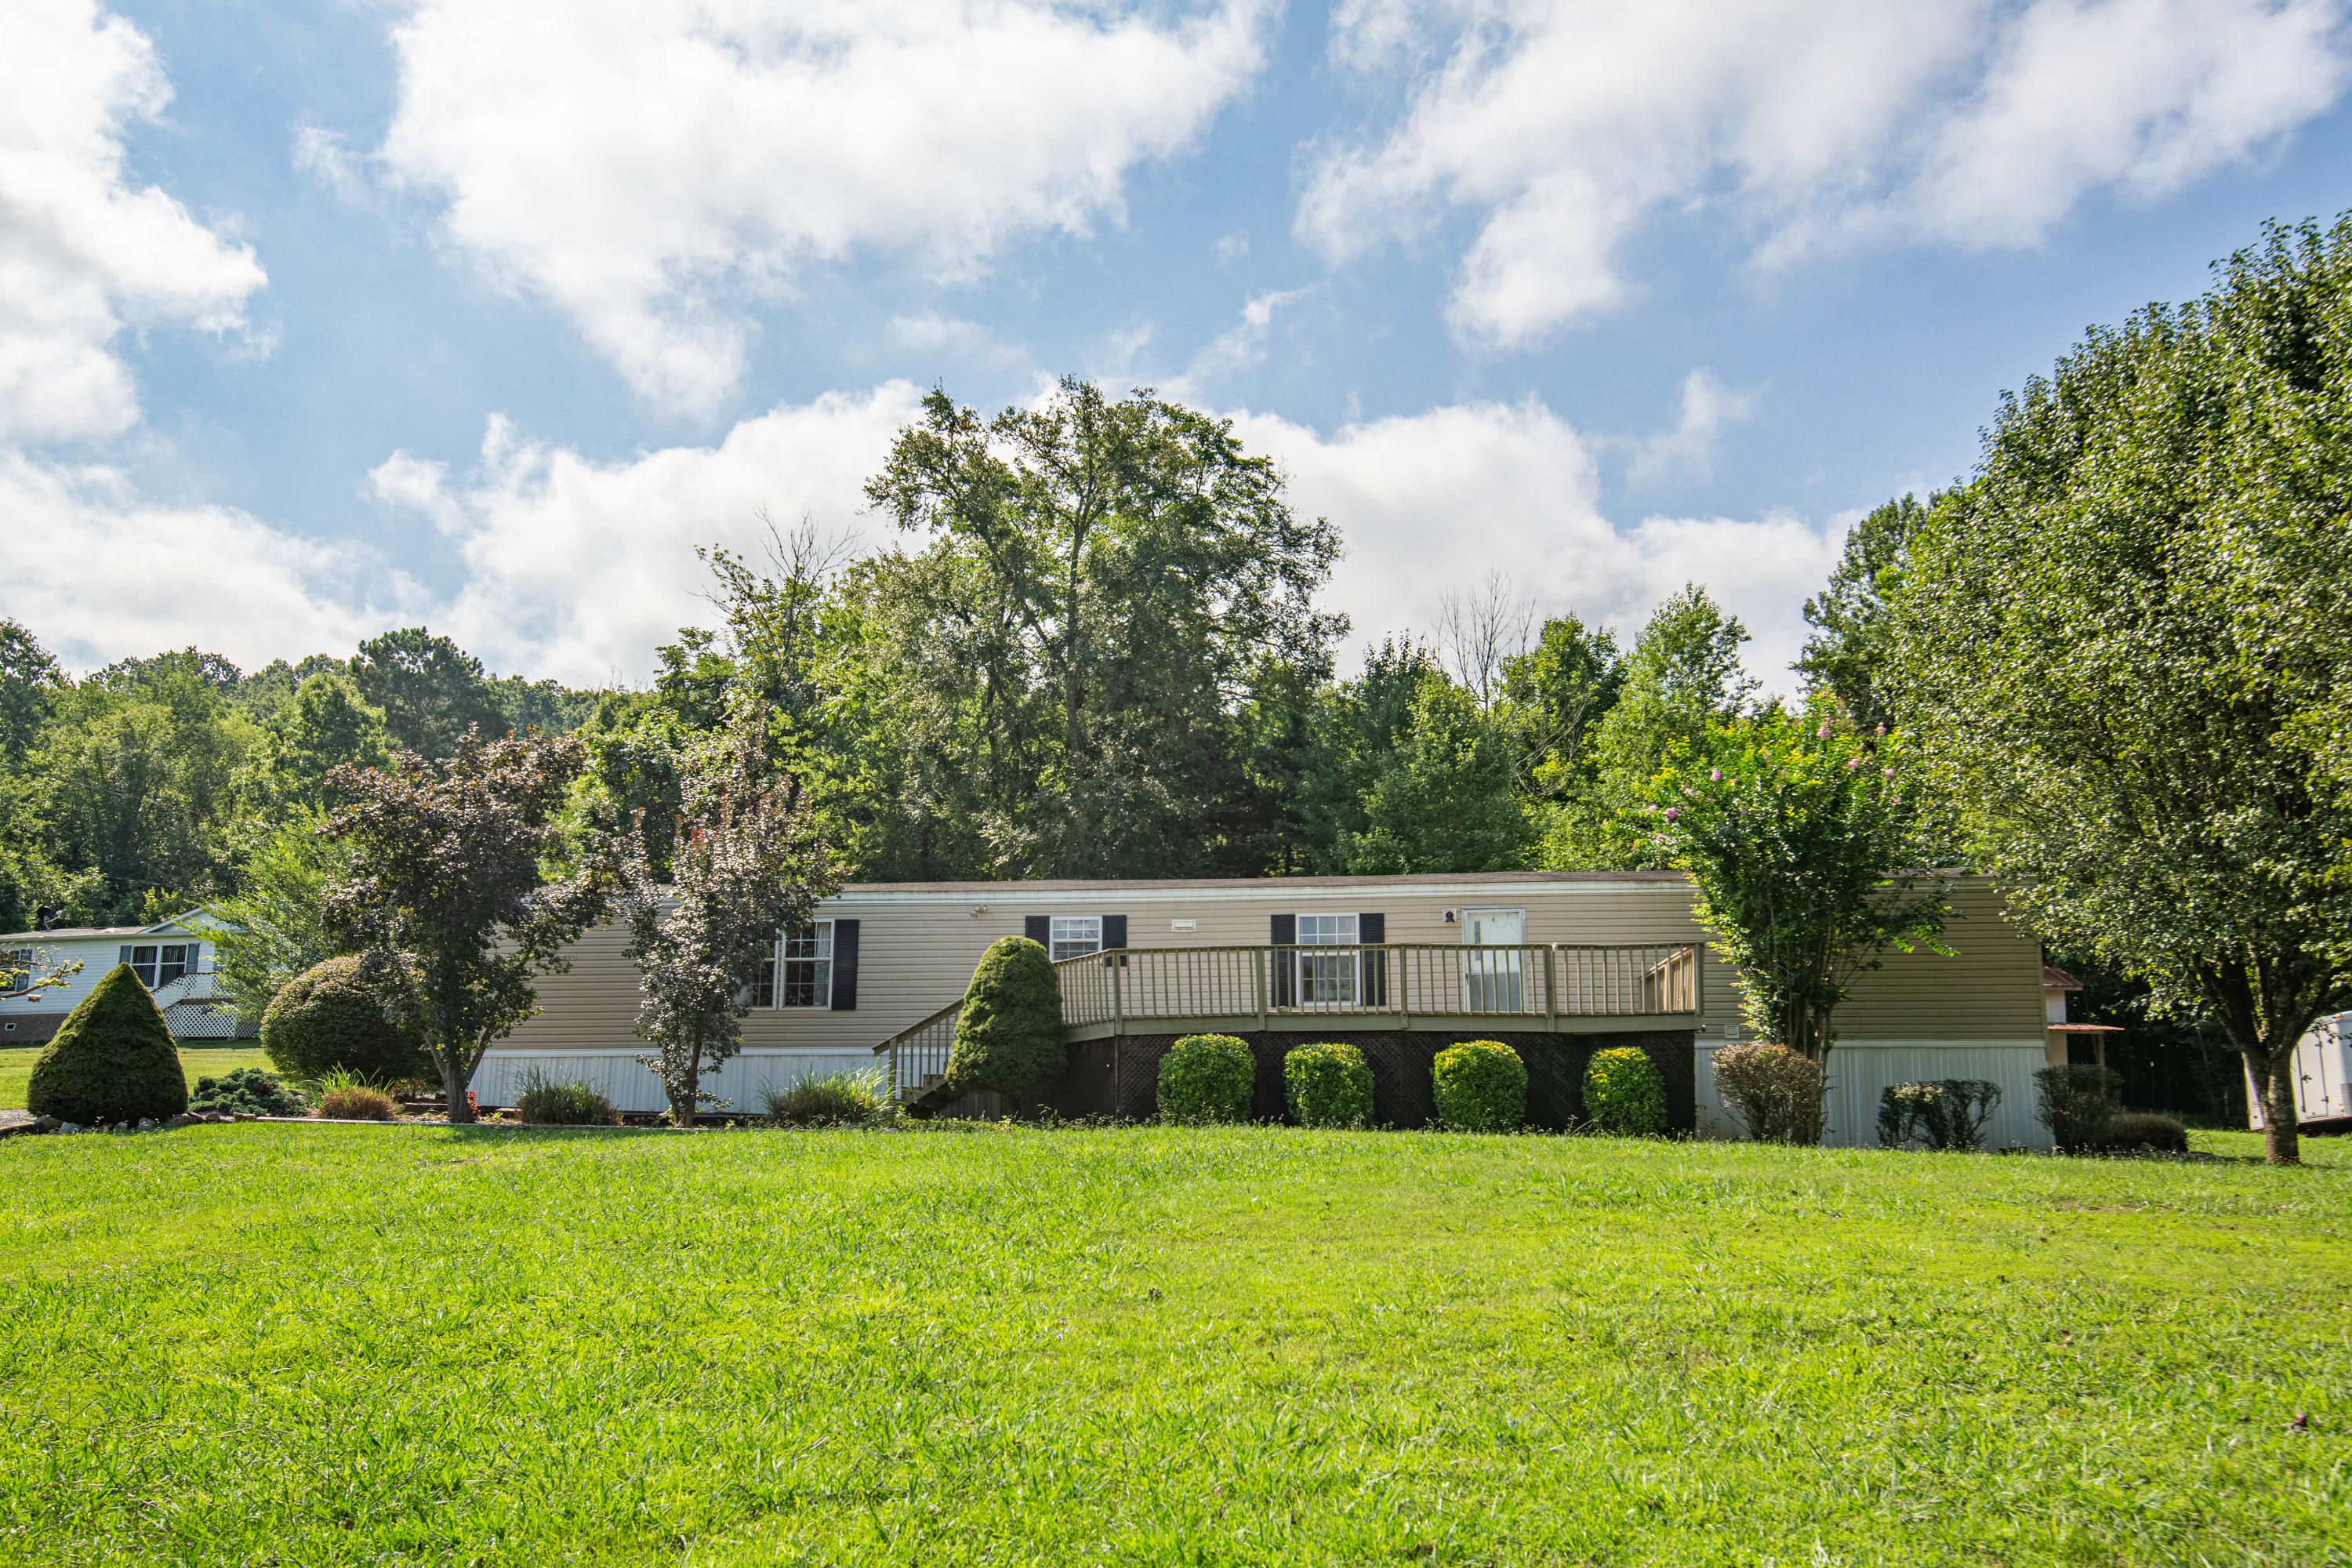 540 Catlett, Kodak, Tennessee, United States 37764, 3 Bedrooms Bedrooms, ,2 BathroomsBathrooms,Single Family,For Sale,Catlett,1125789